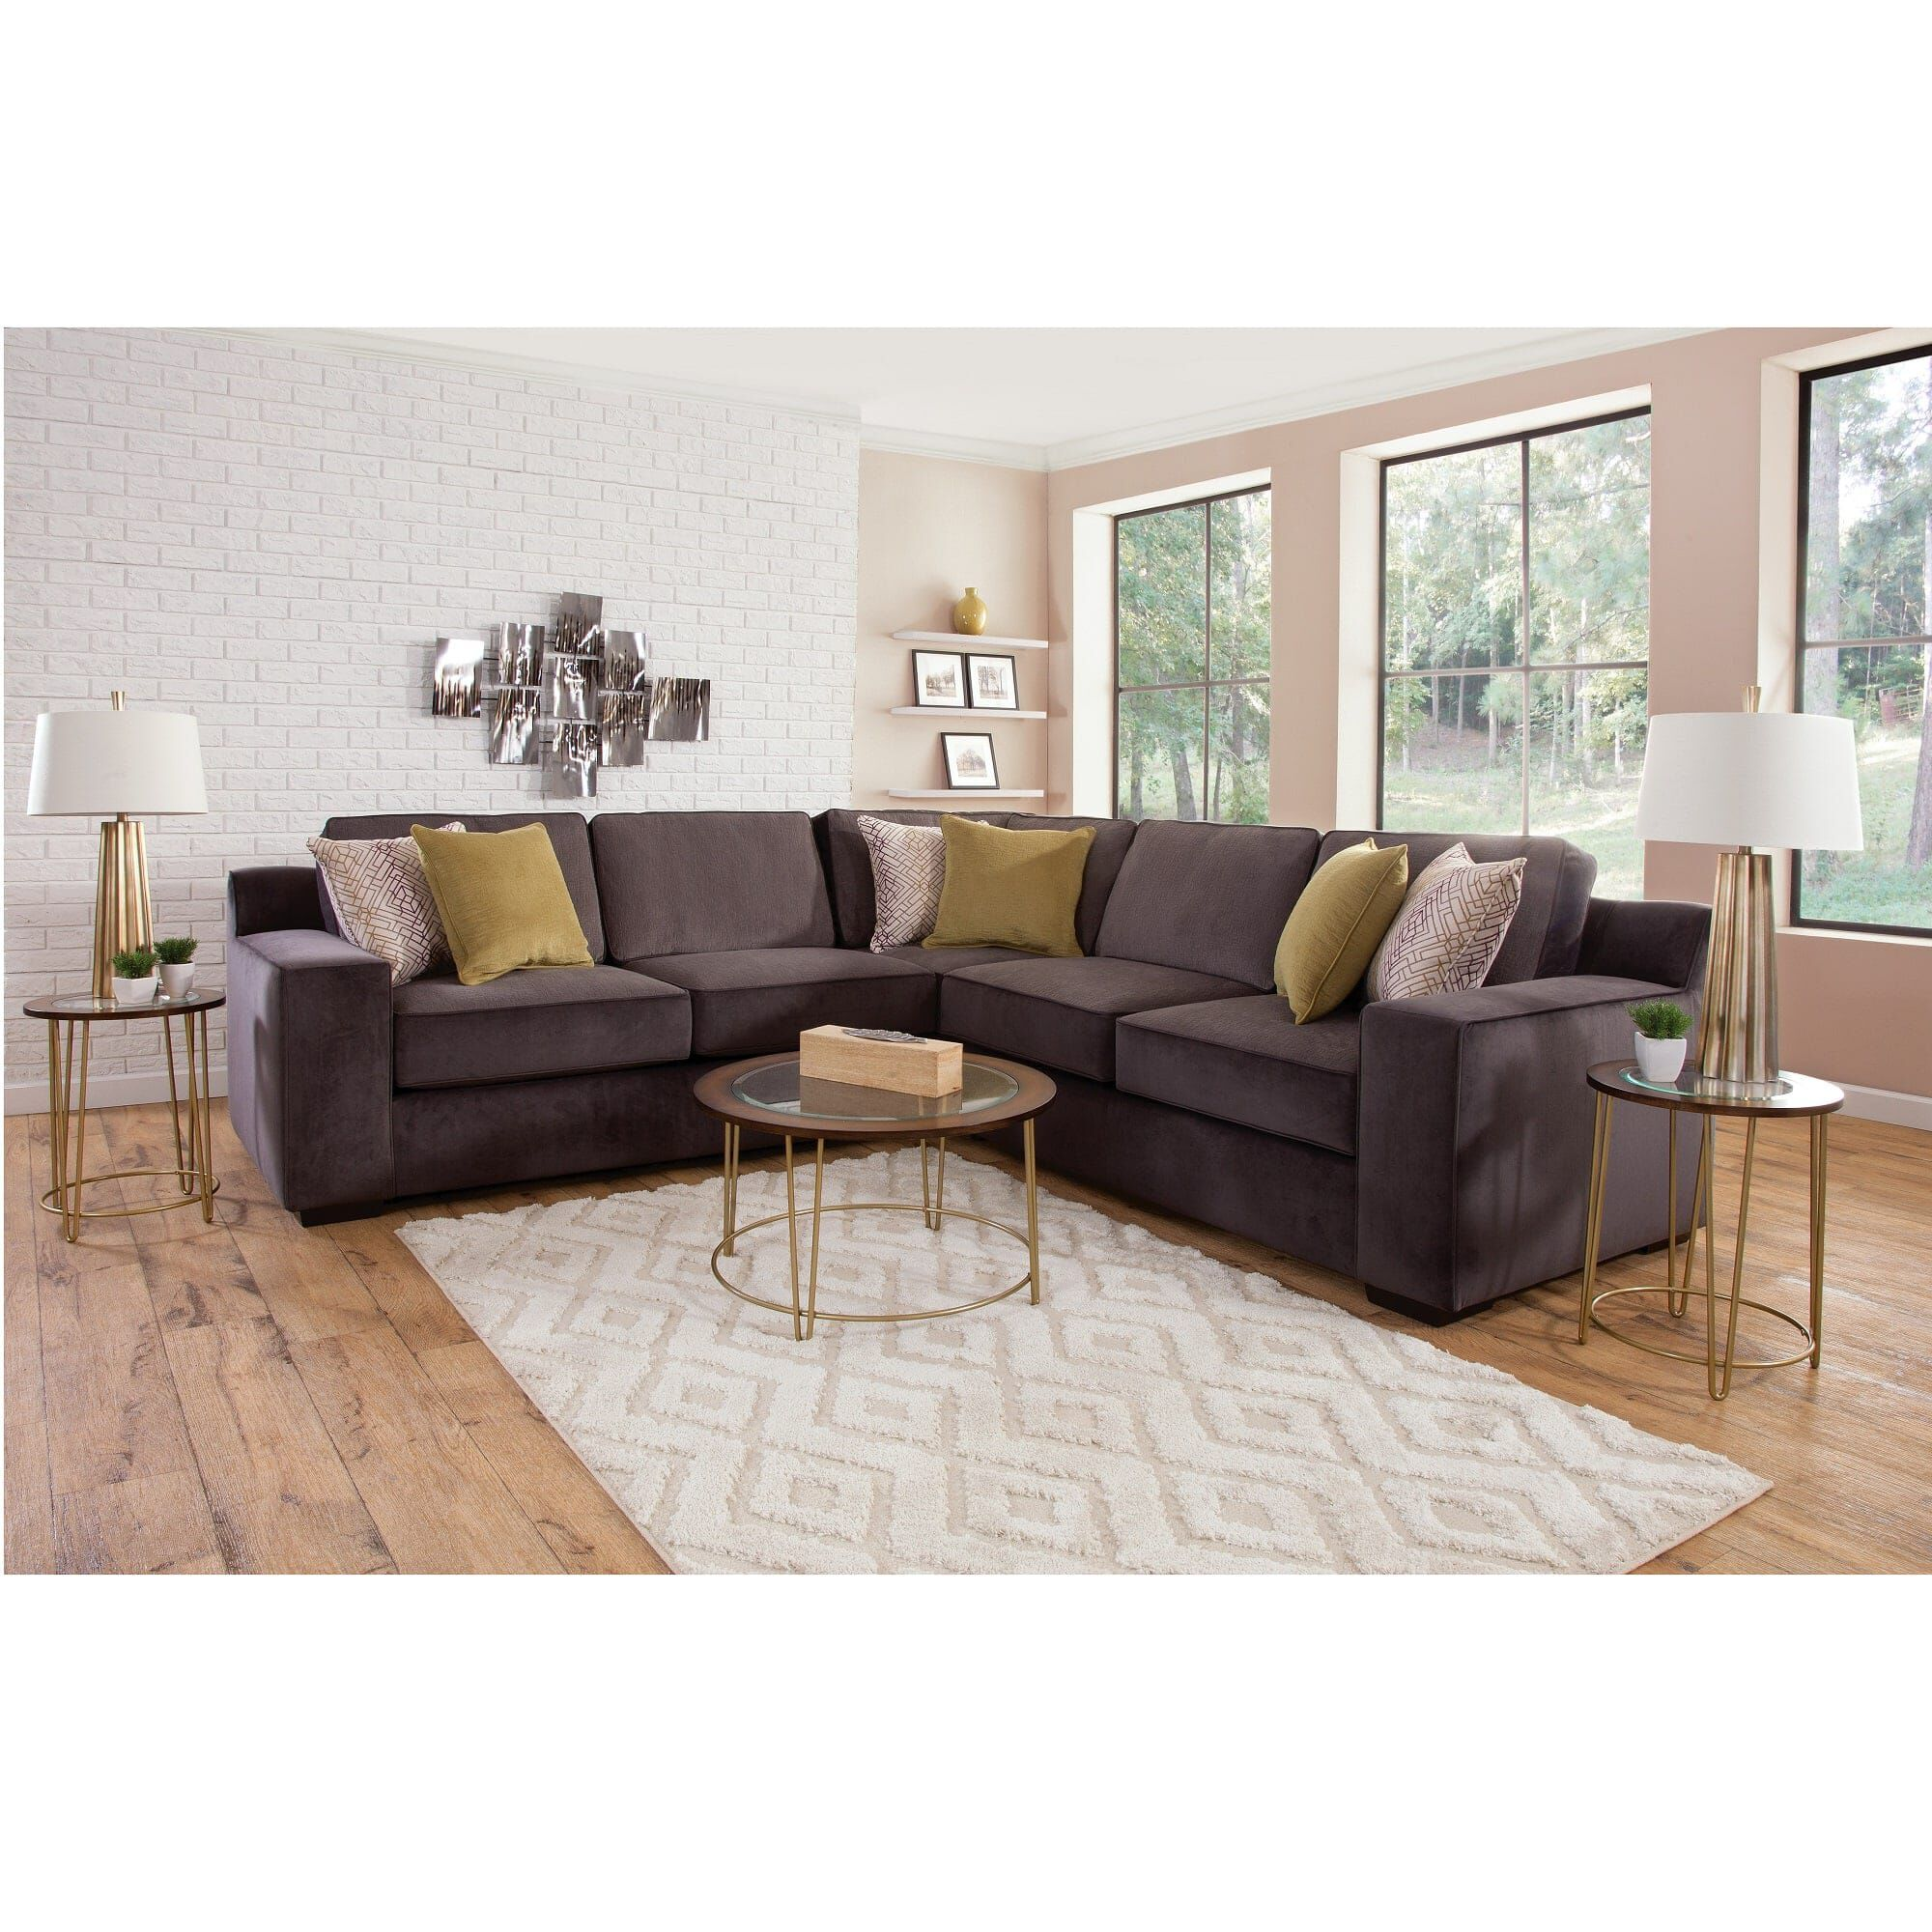 woodhaven living room furniture idea with brown couch industries sectionals 3 piece sonja collection